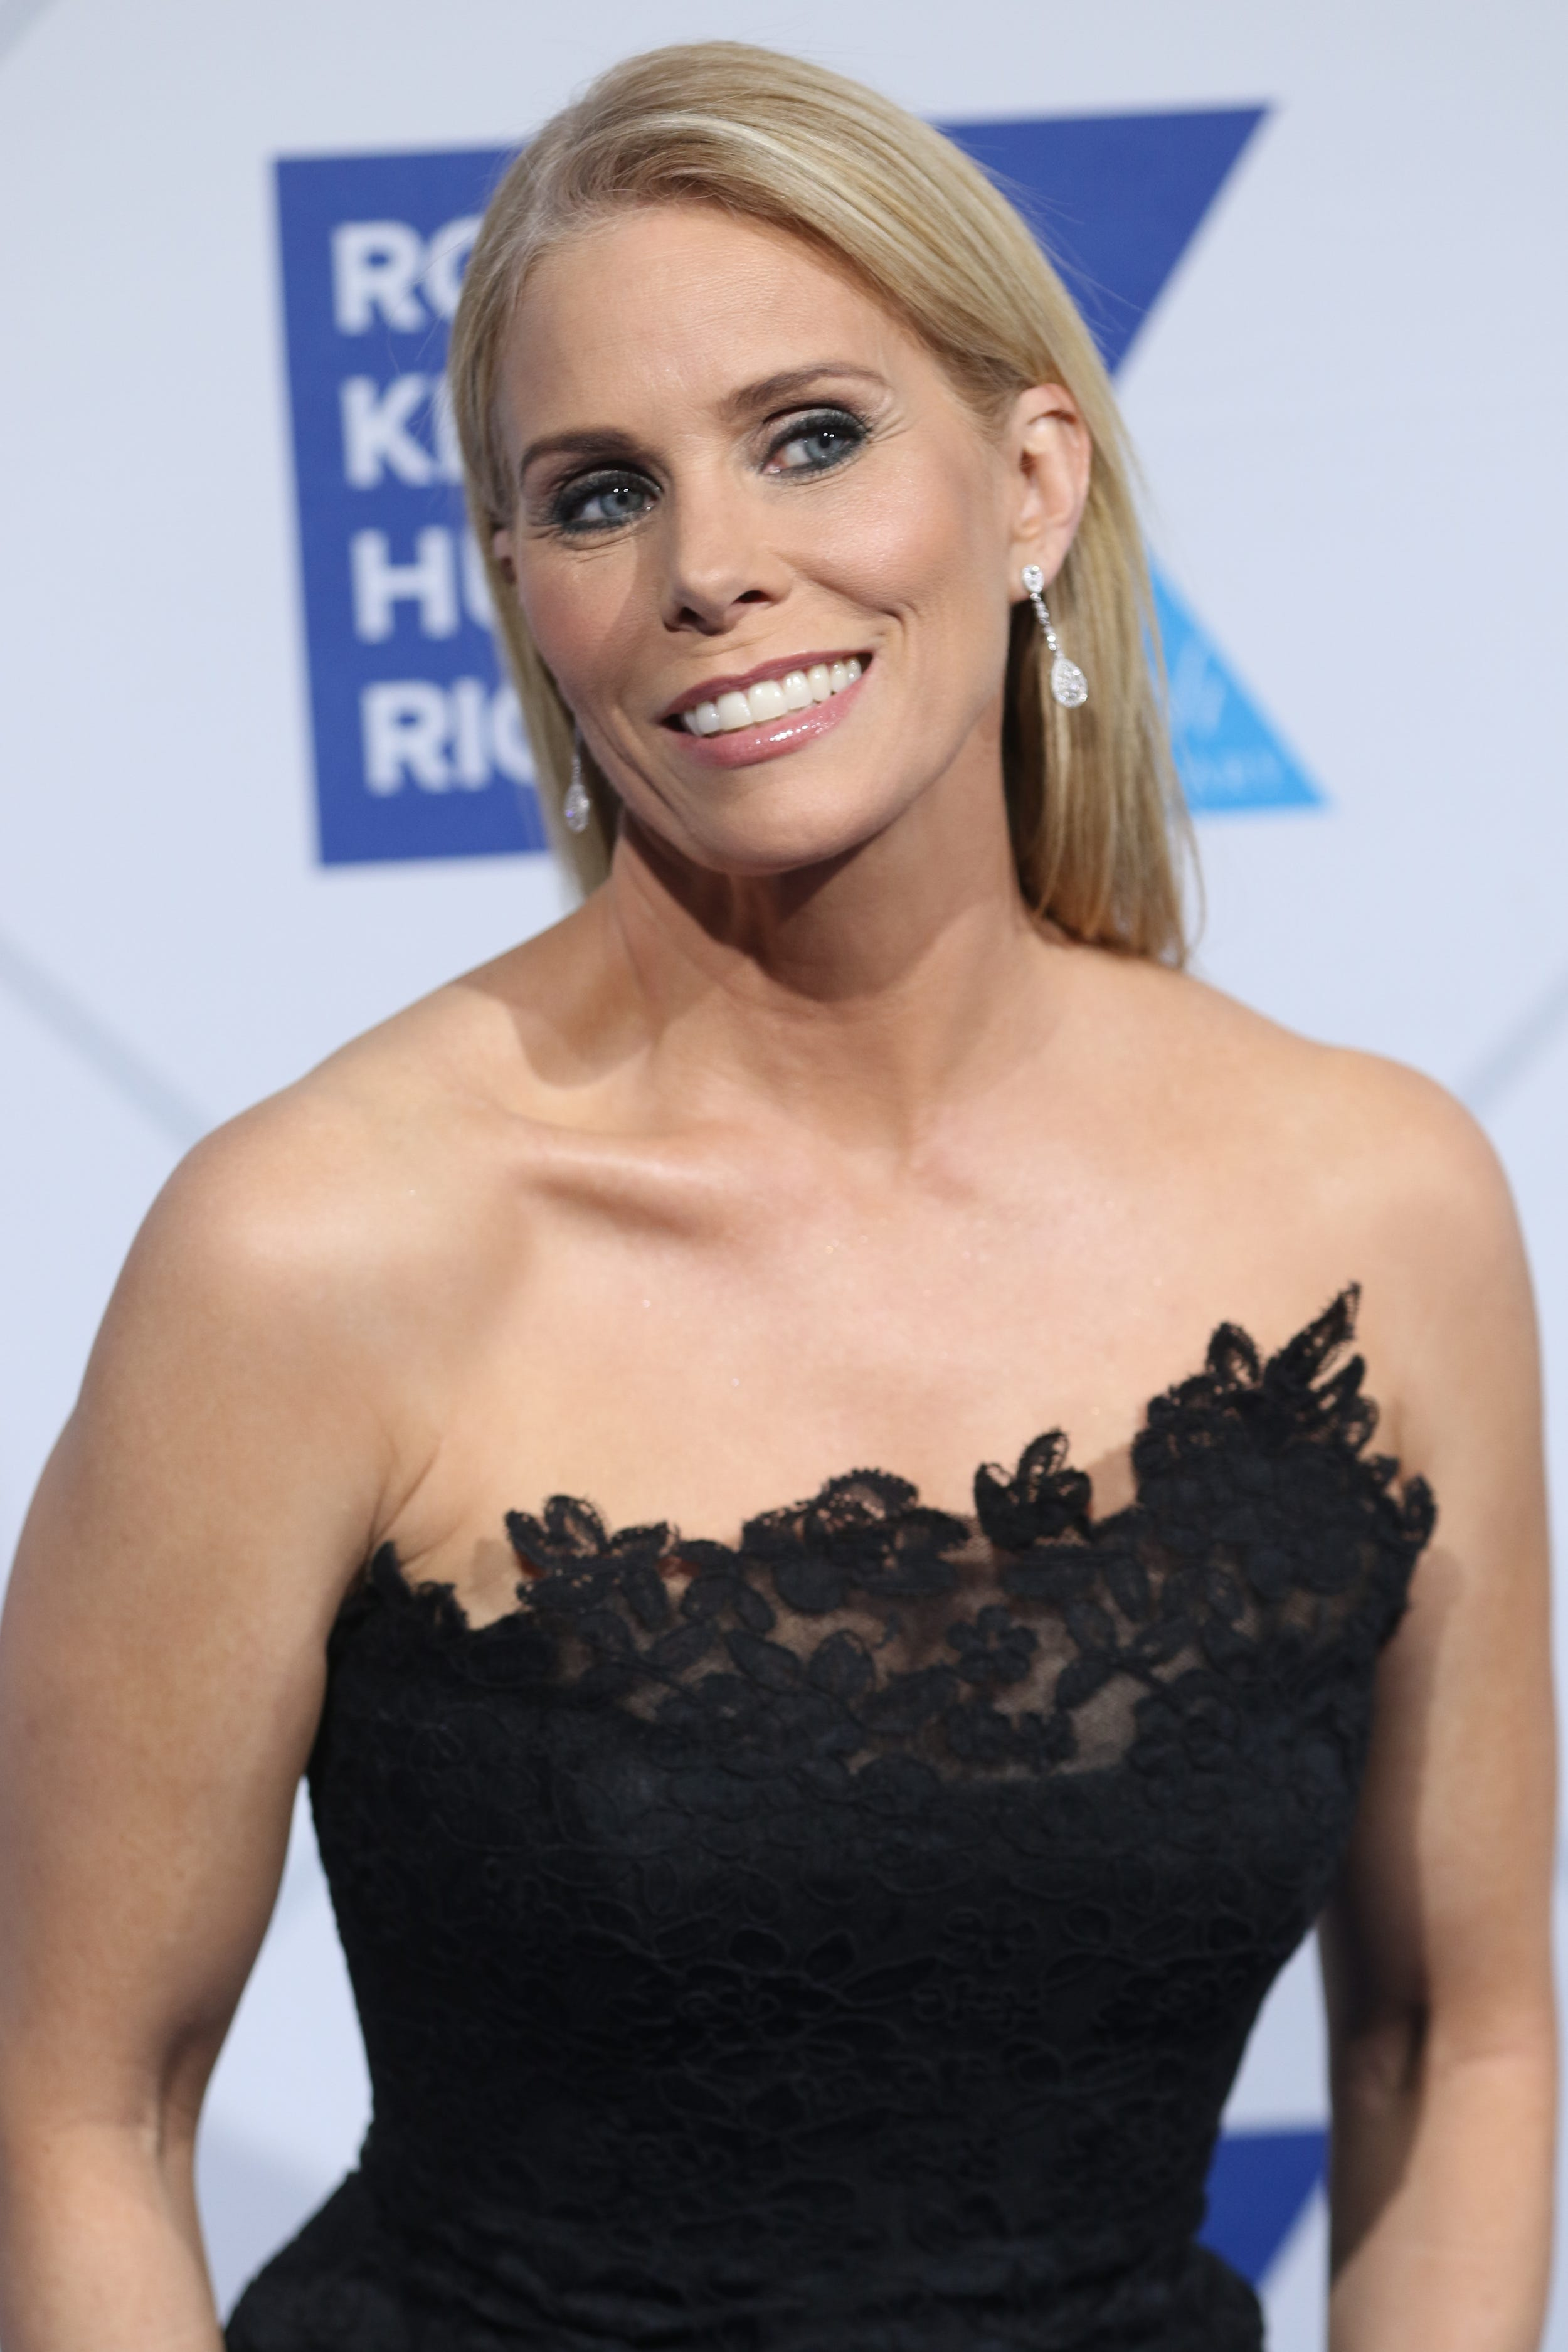 2019 Cheryl Hines naked (52 foto and video), Topless, Hot, Feet, cleavage 2019